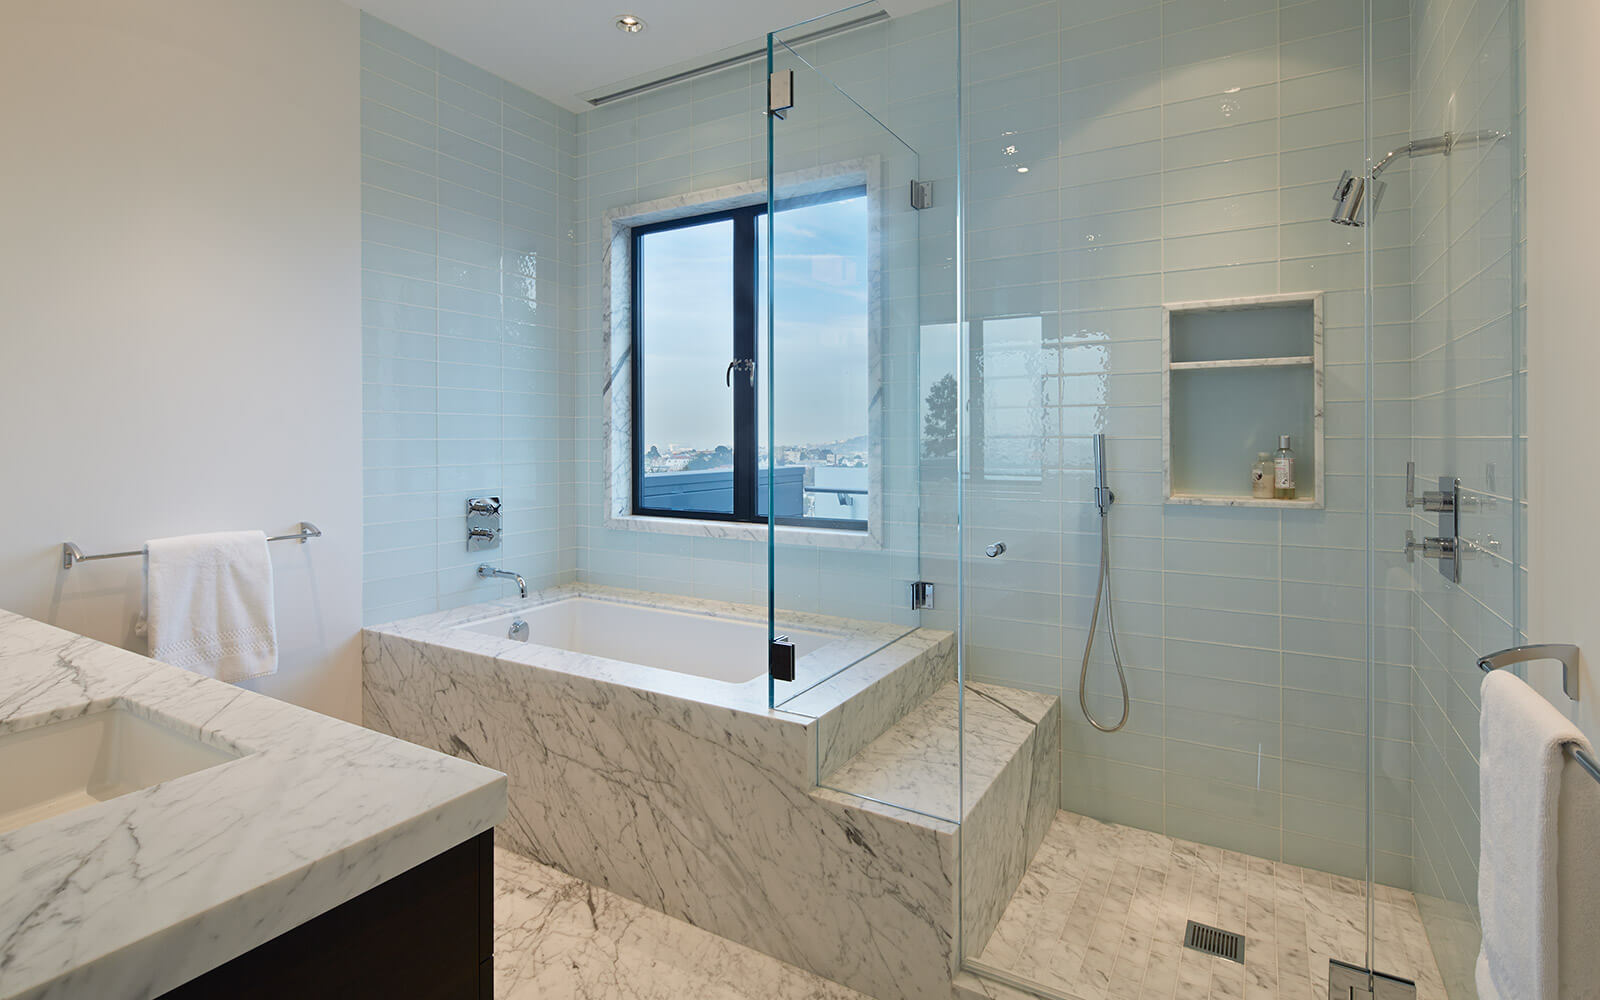 studio vara residential noe bathroom shower